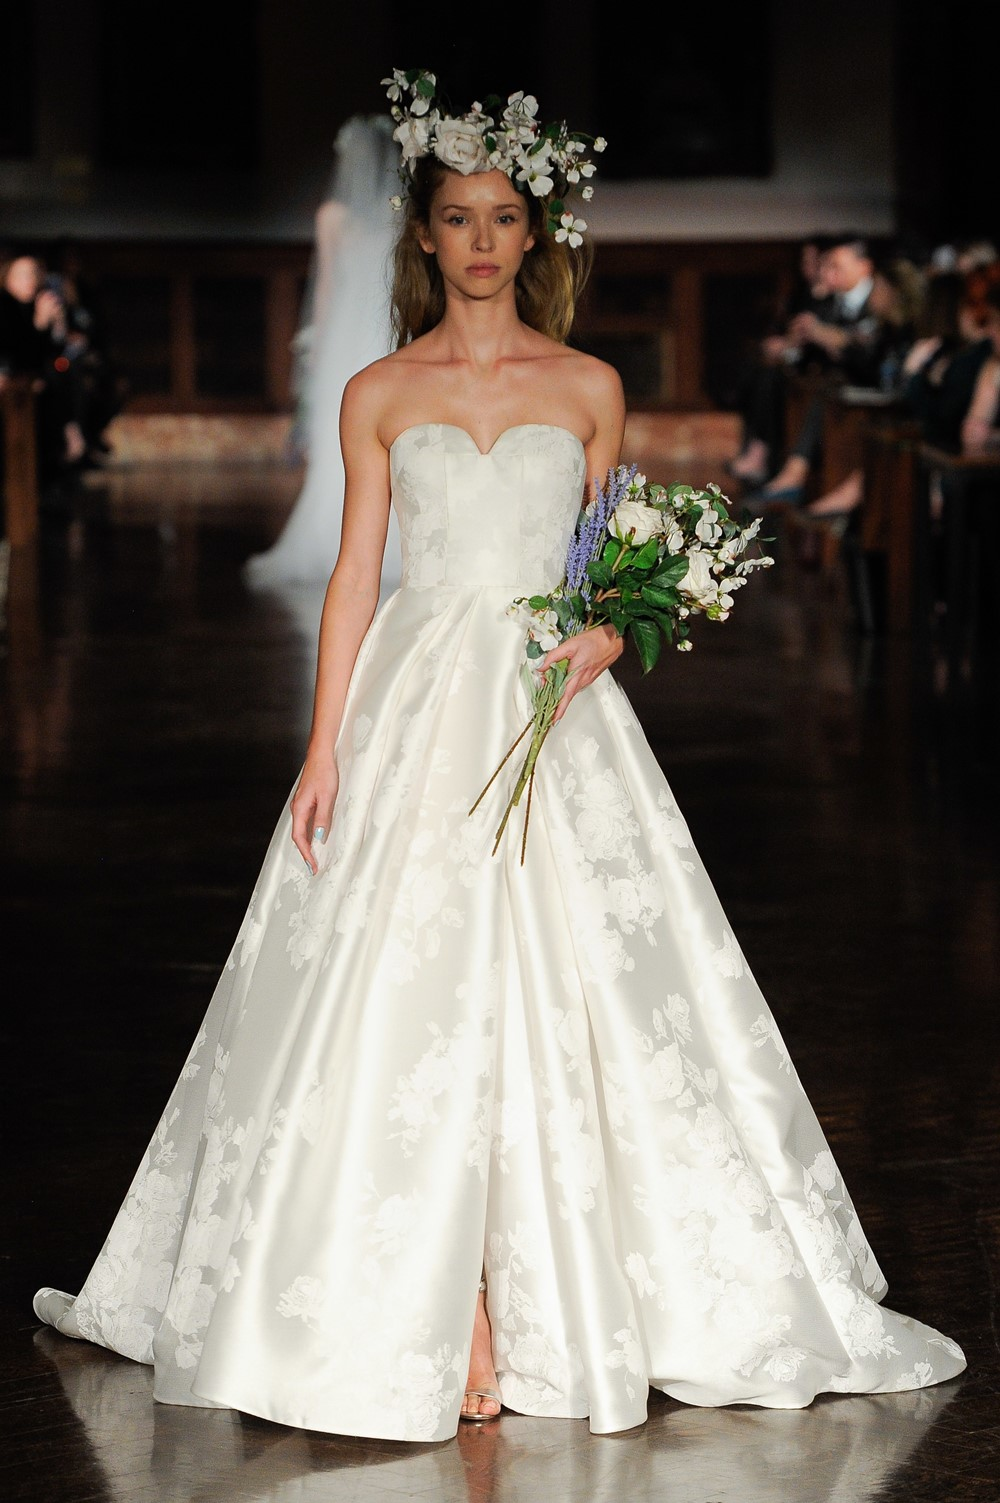 2019 Bridal Trends - Regal Reem Acra